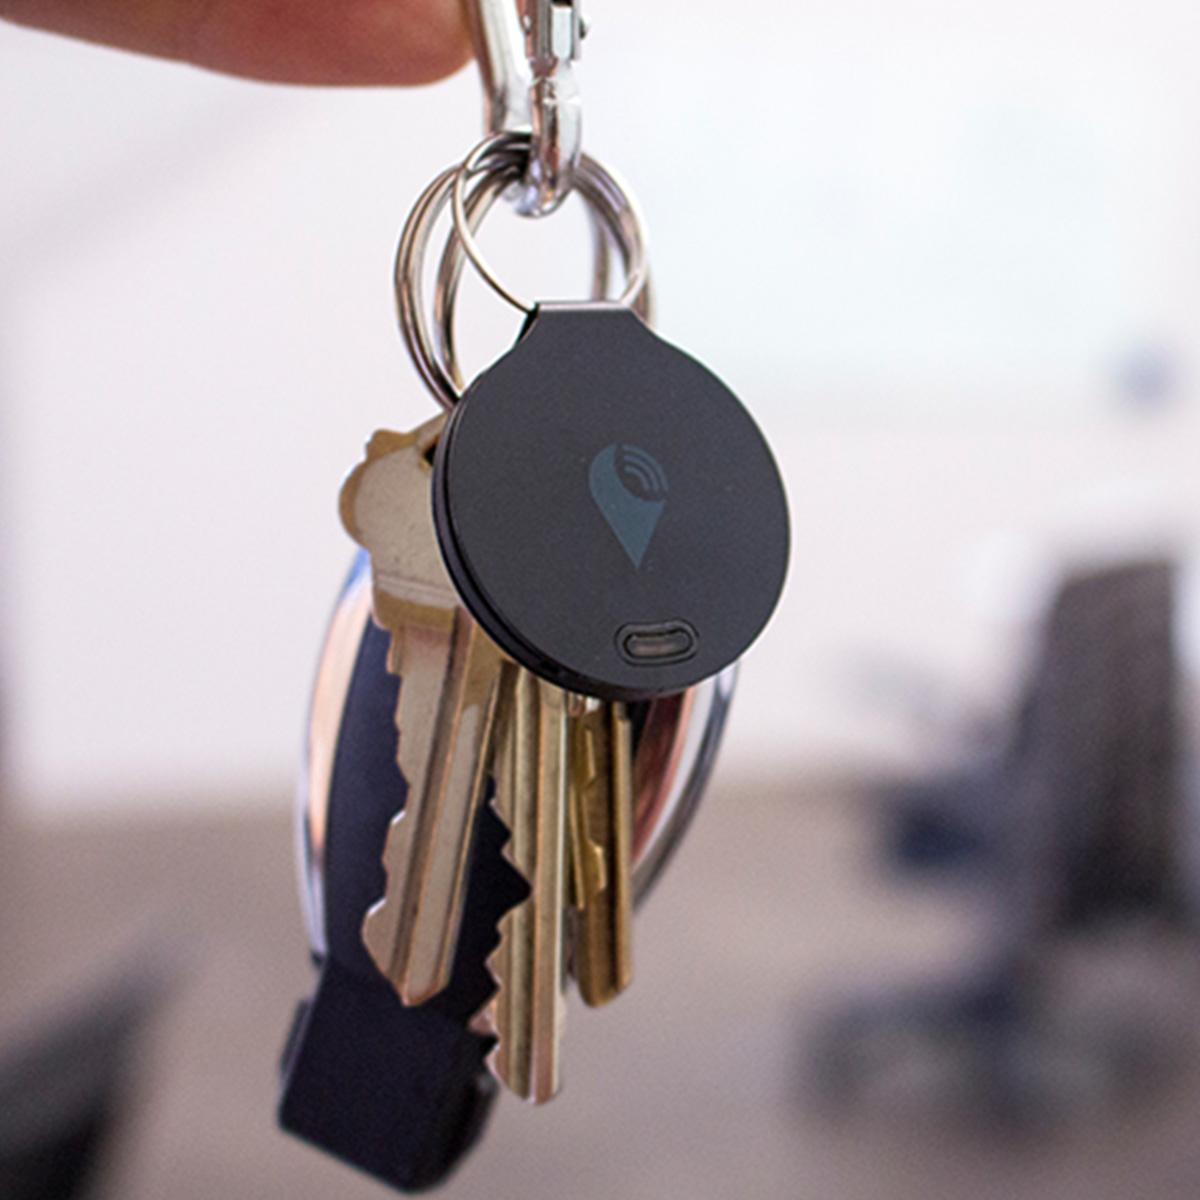 Traceur Bluetooth TrackR